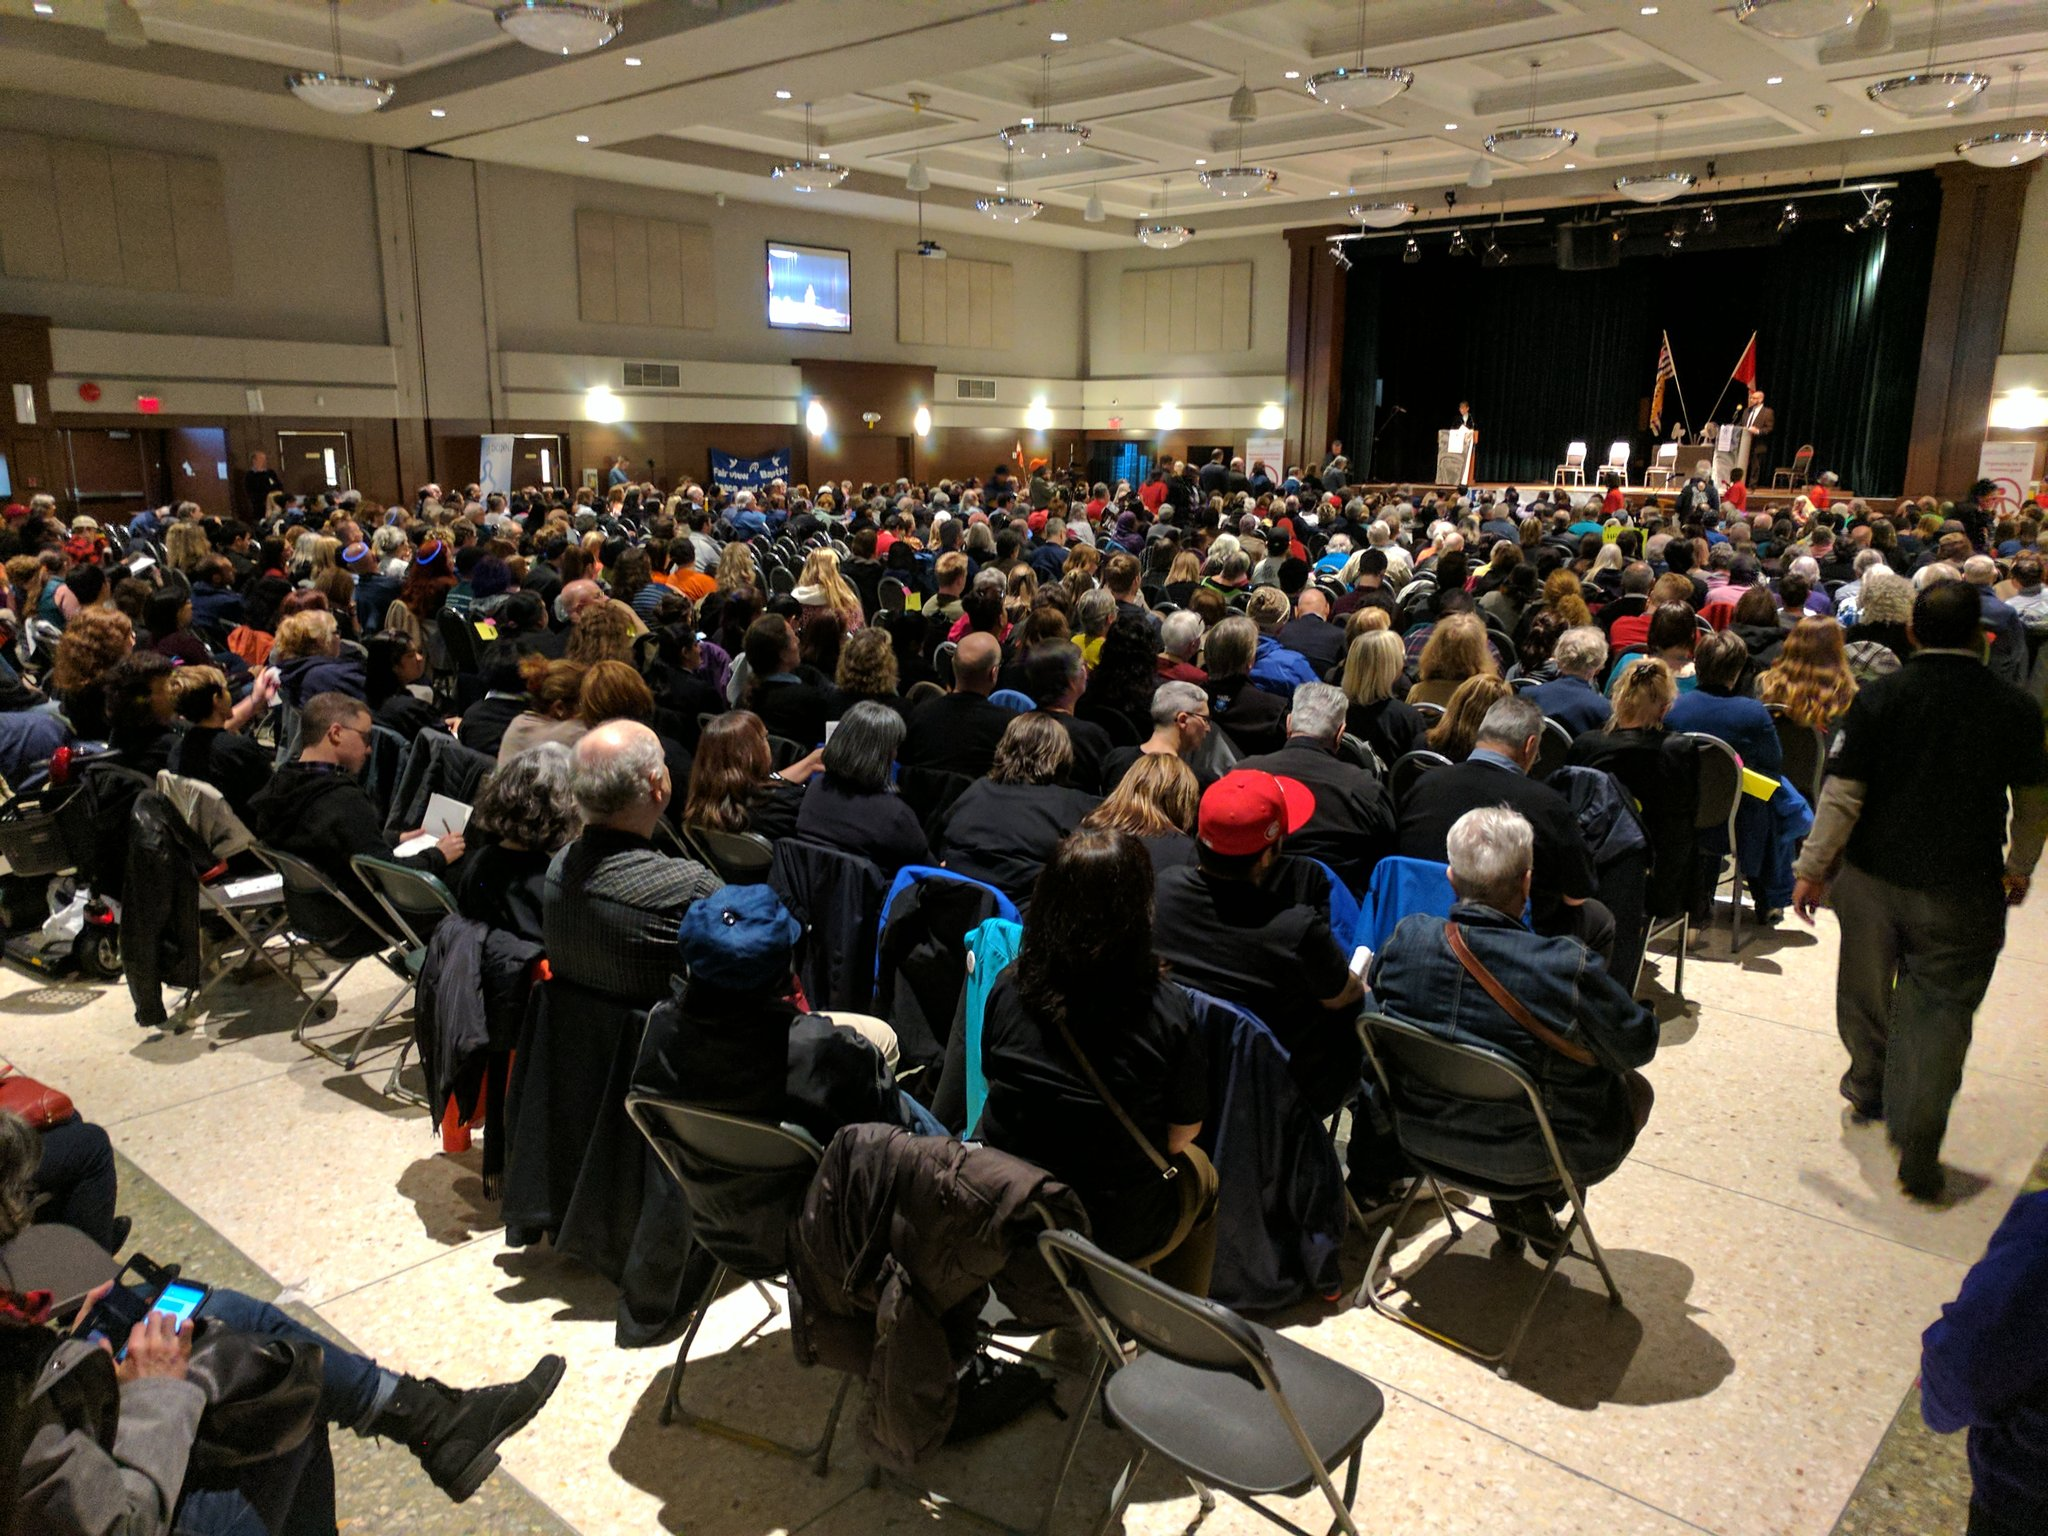 At the @MetVanAlliance Accountability Assembly. 900 folks in attendance demanding accountability from our elected leaders #bcelxn17 #bcpoli https://t.co/yKH5ubjkQF